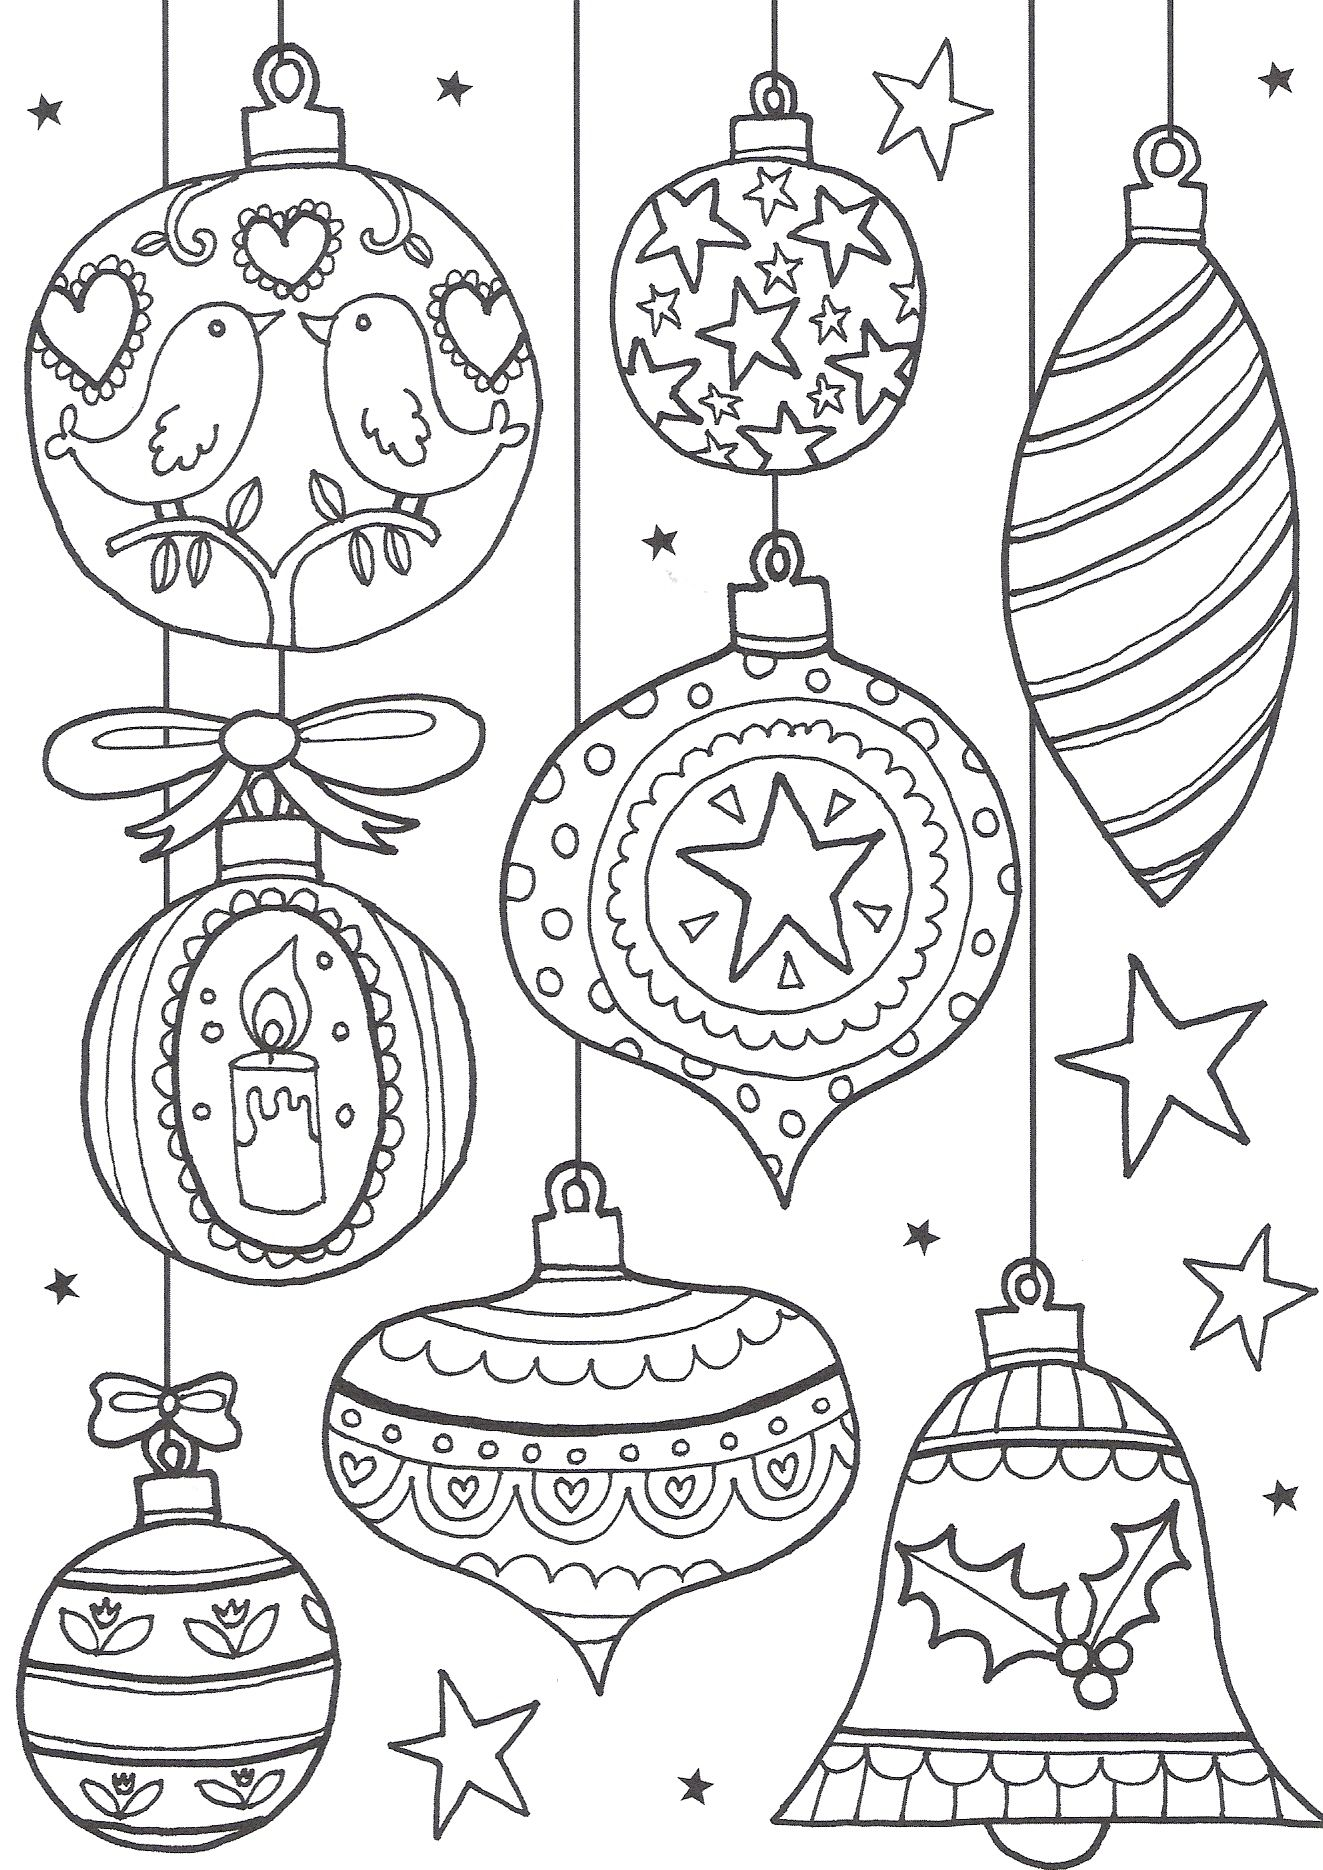 Free Disney Christmas Colouring Sheets With Pages For Adults The Ultimate Roundup